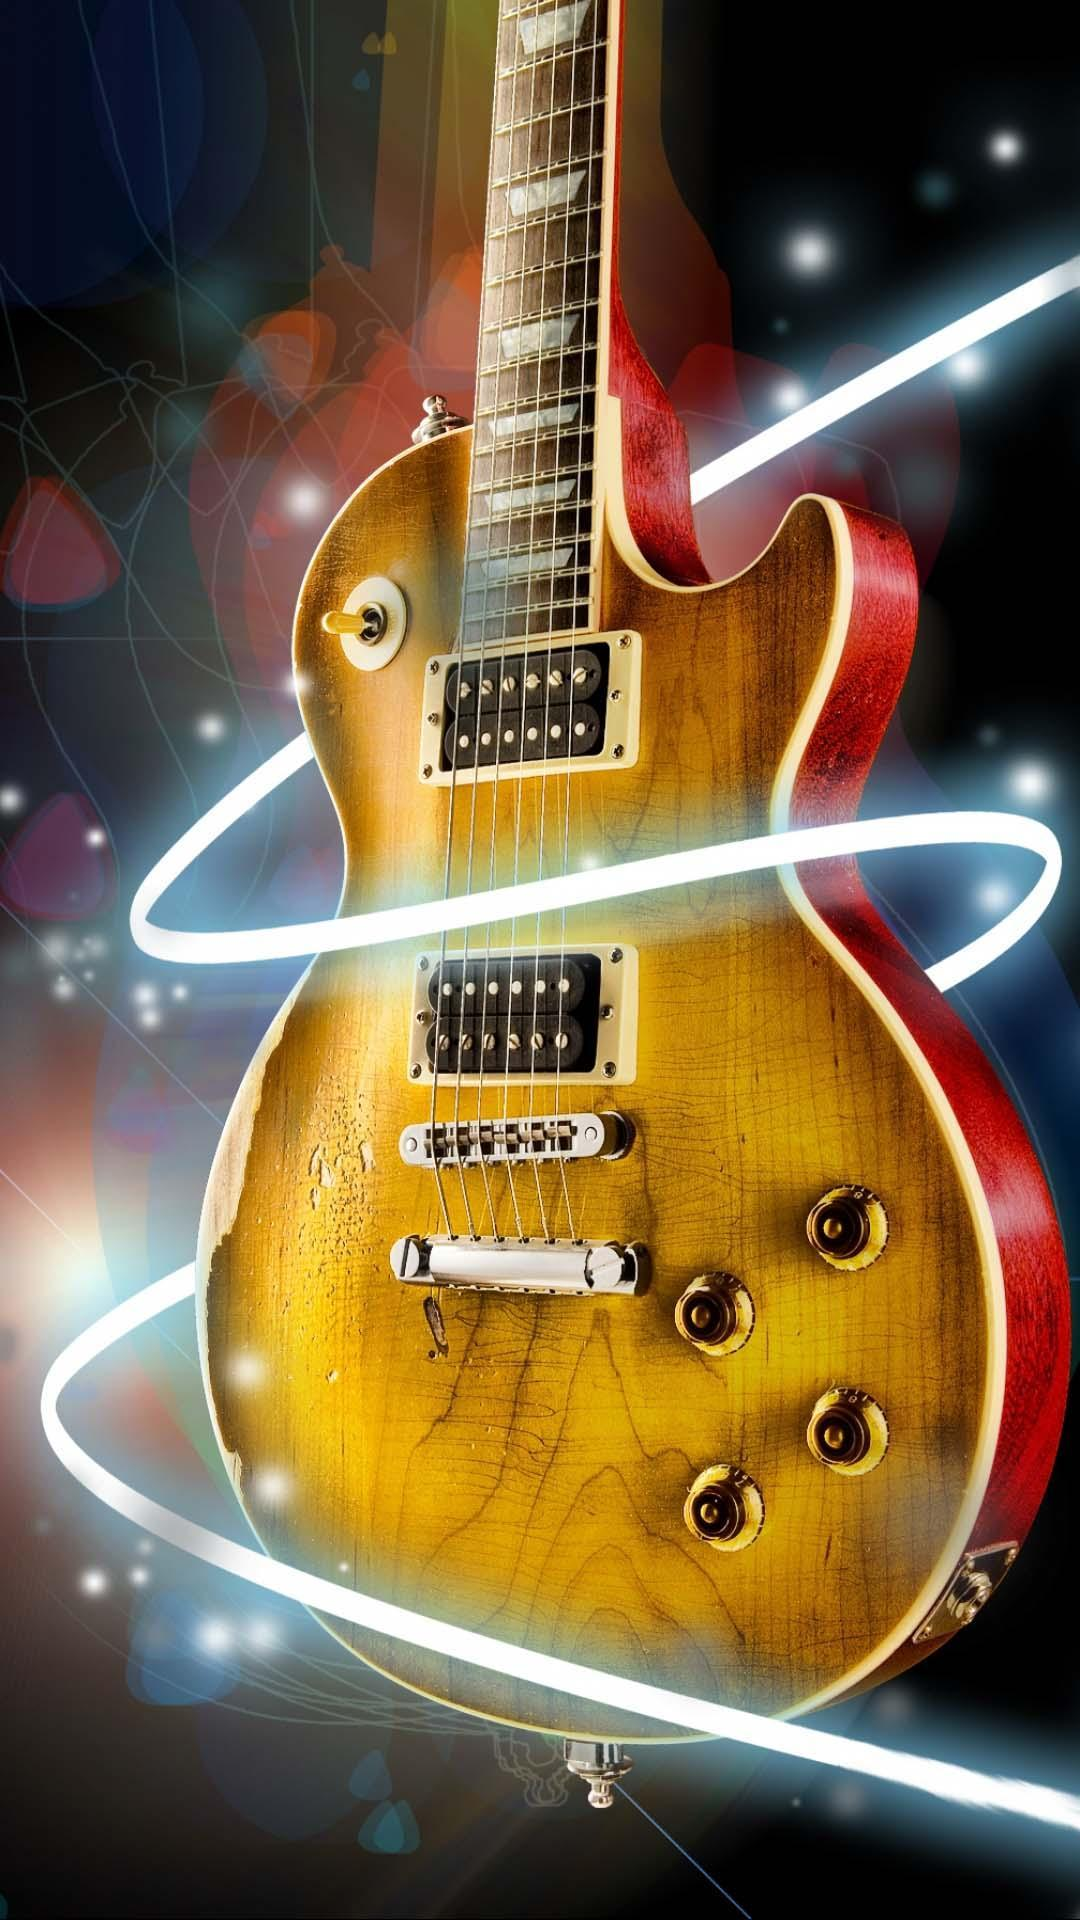 Music Wallpaper 4k Ultra Hd For Android Apk Download